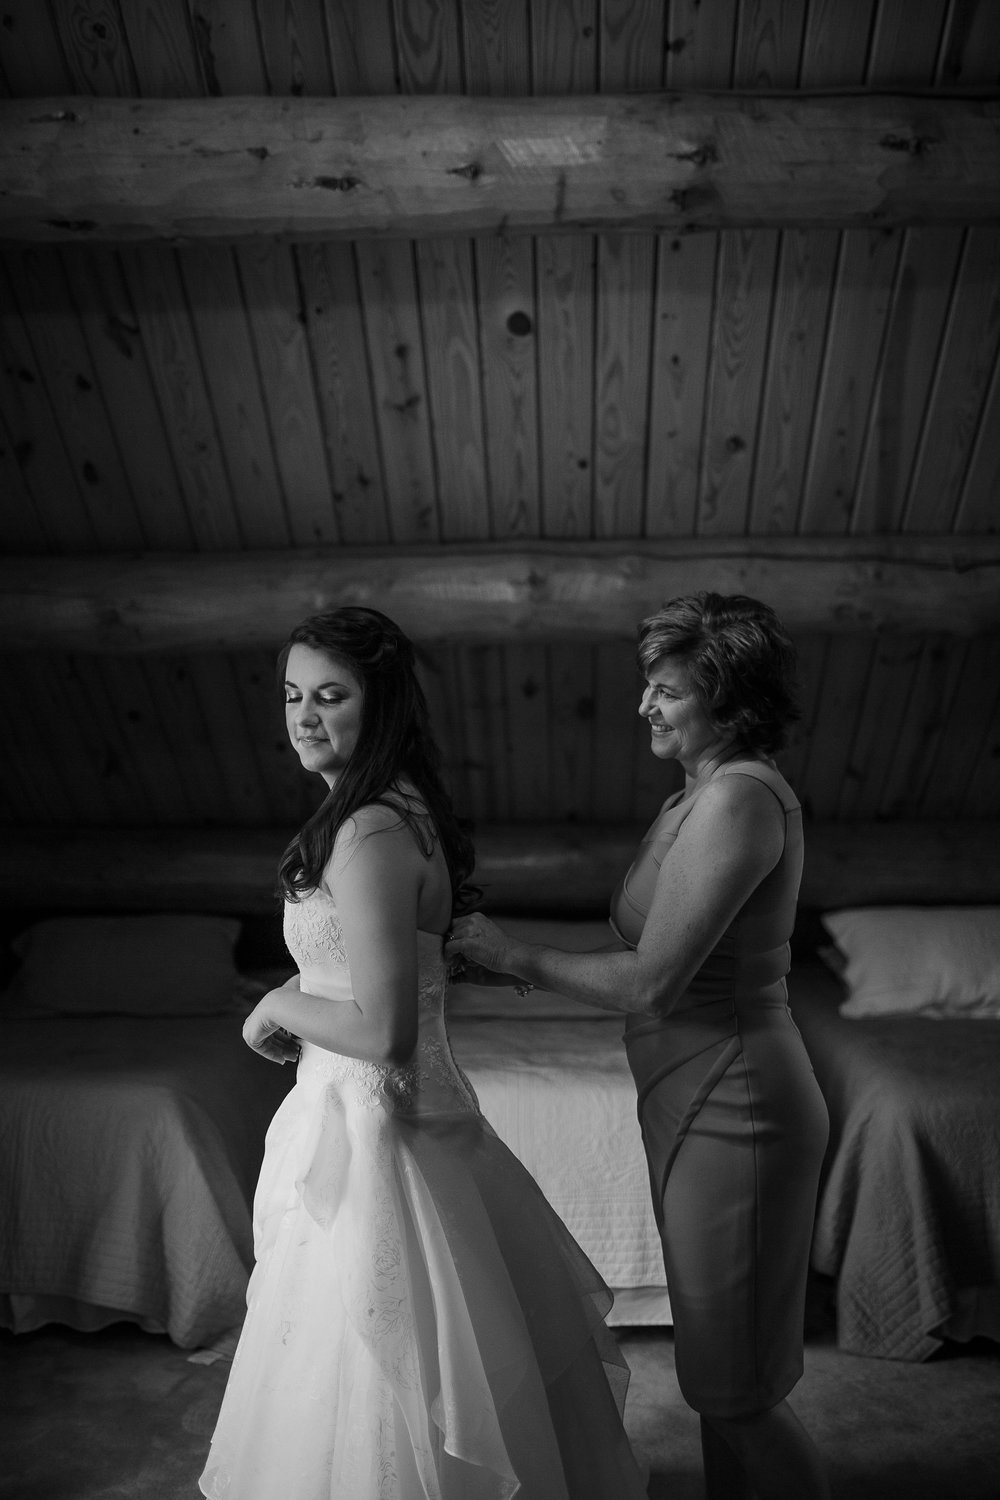 cassie-cook-photography-the-bridge-at-chisleigh-farm-memphis-wedding-photographer